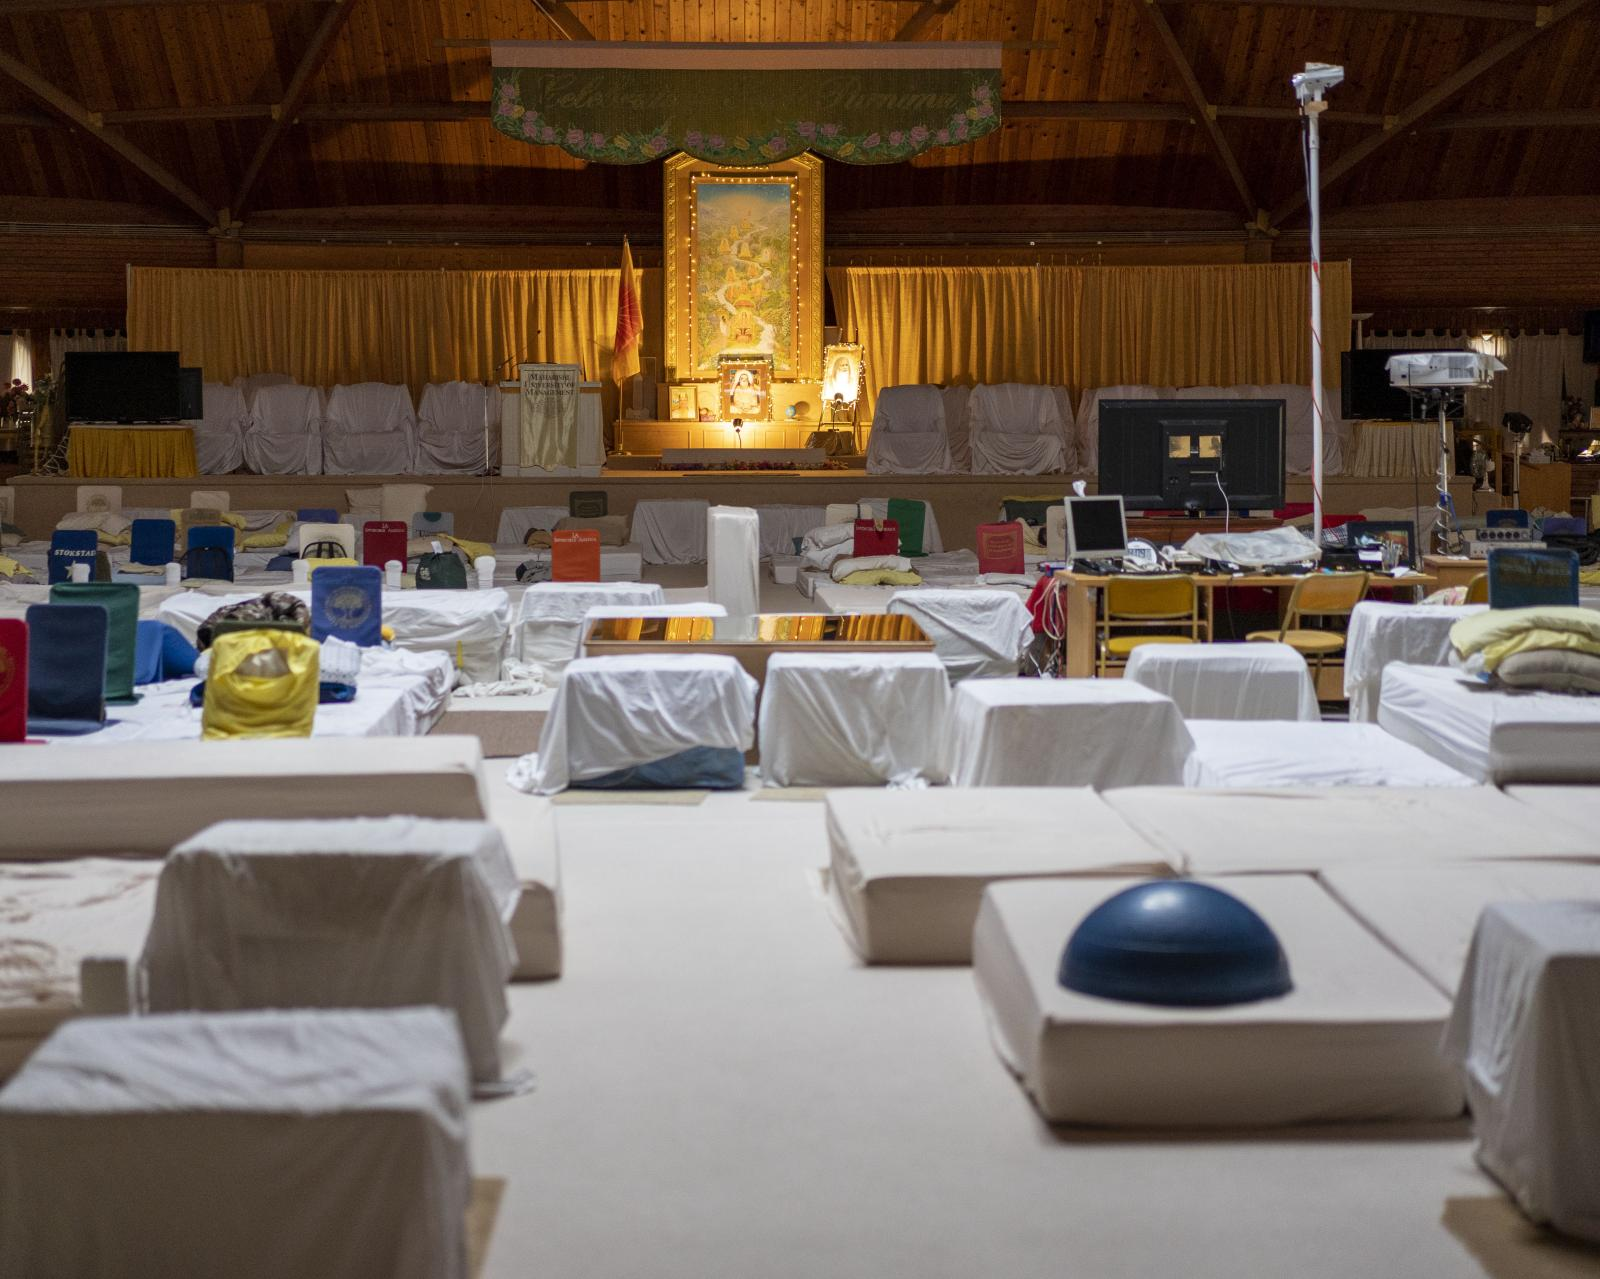 The interior of the men's meditation dome on the campus of the Maharishi University of Management in Fairfield, Iowa on Saturday, September 21, 2019. KC McGinnis for Politico Magazine